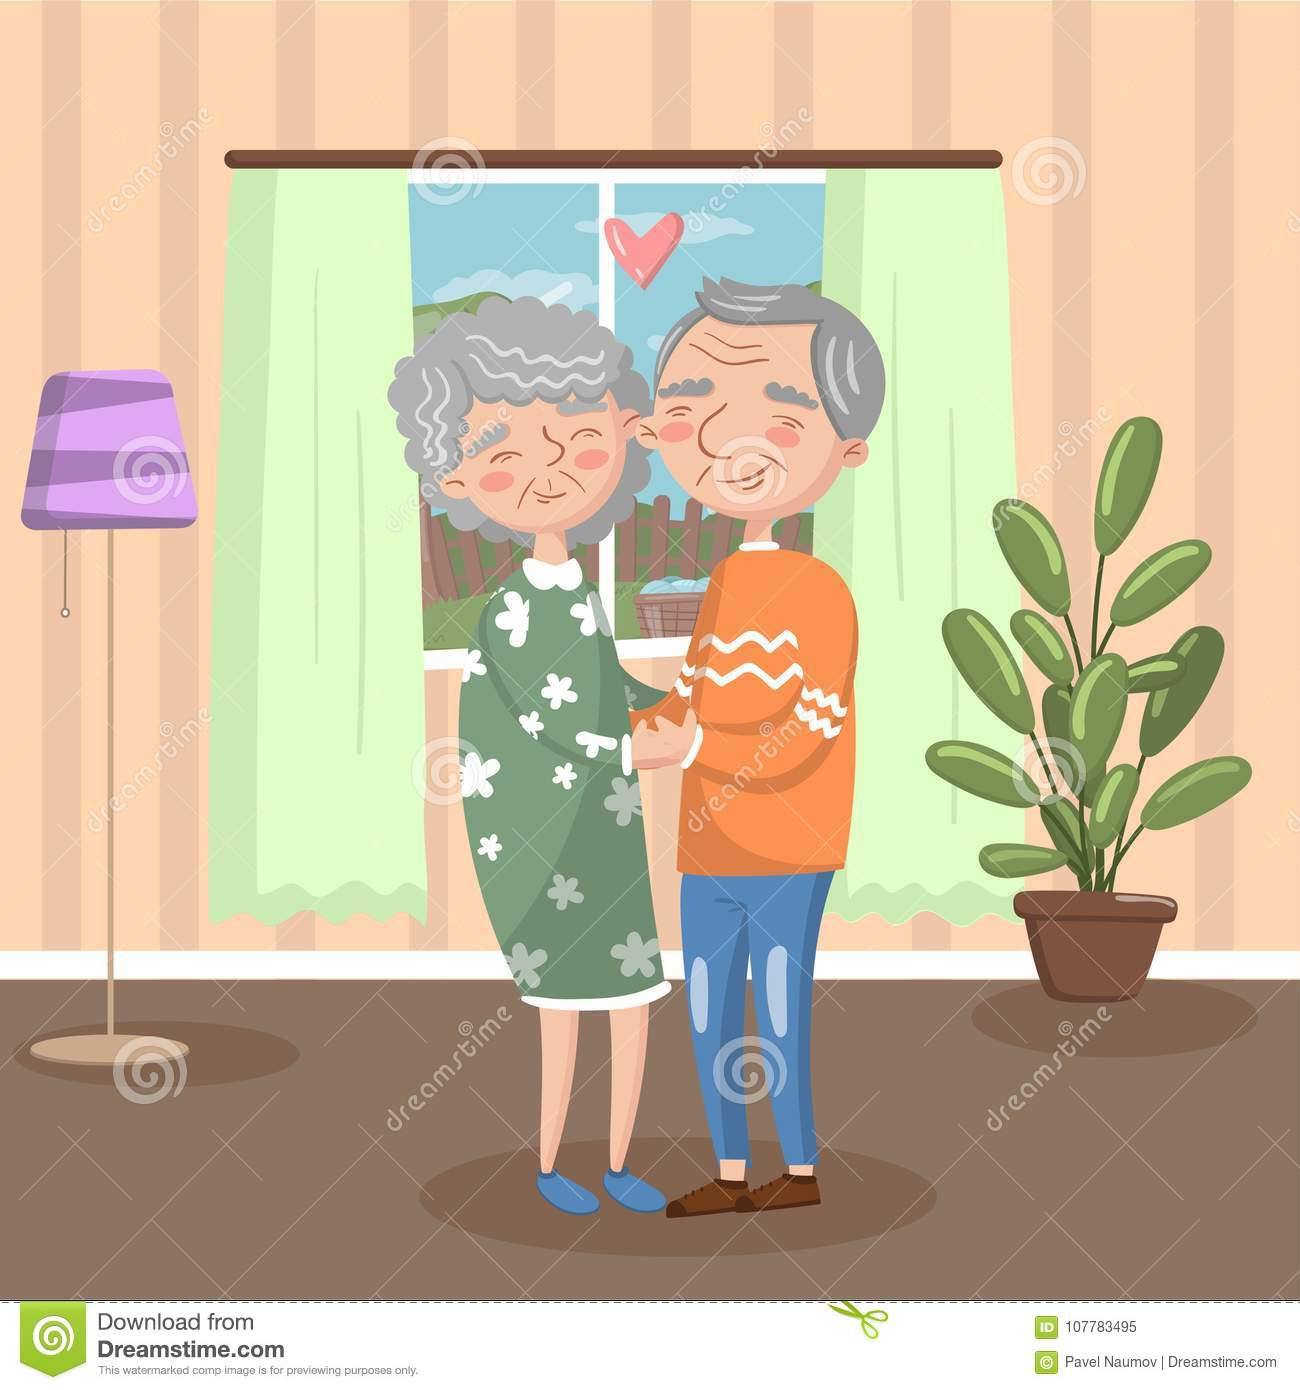 Love Each Other Cartoon: Happy Senior Couple In Love Holding Each Other Hands At